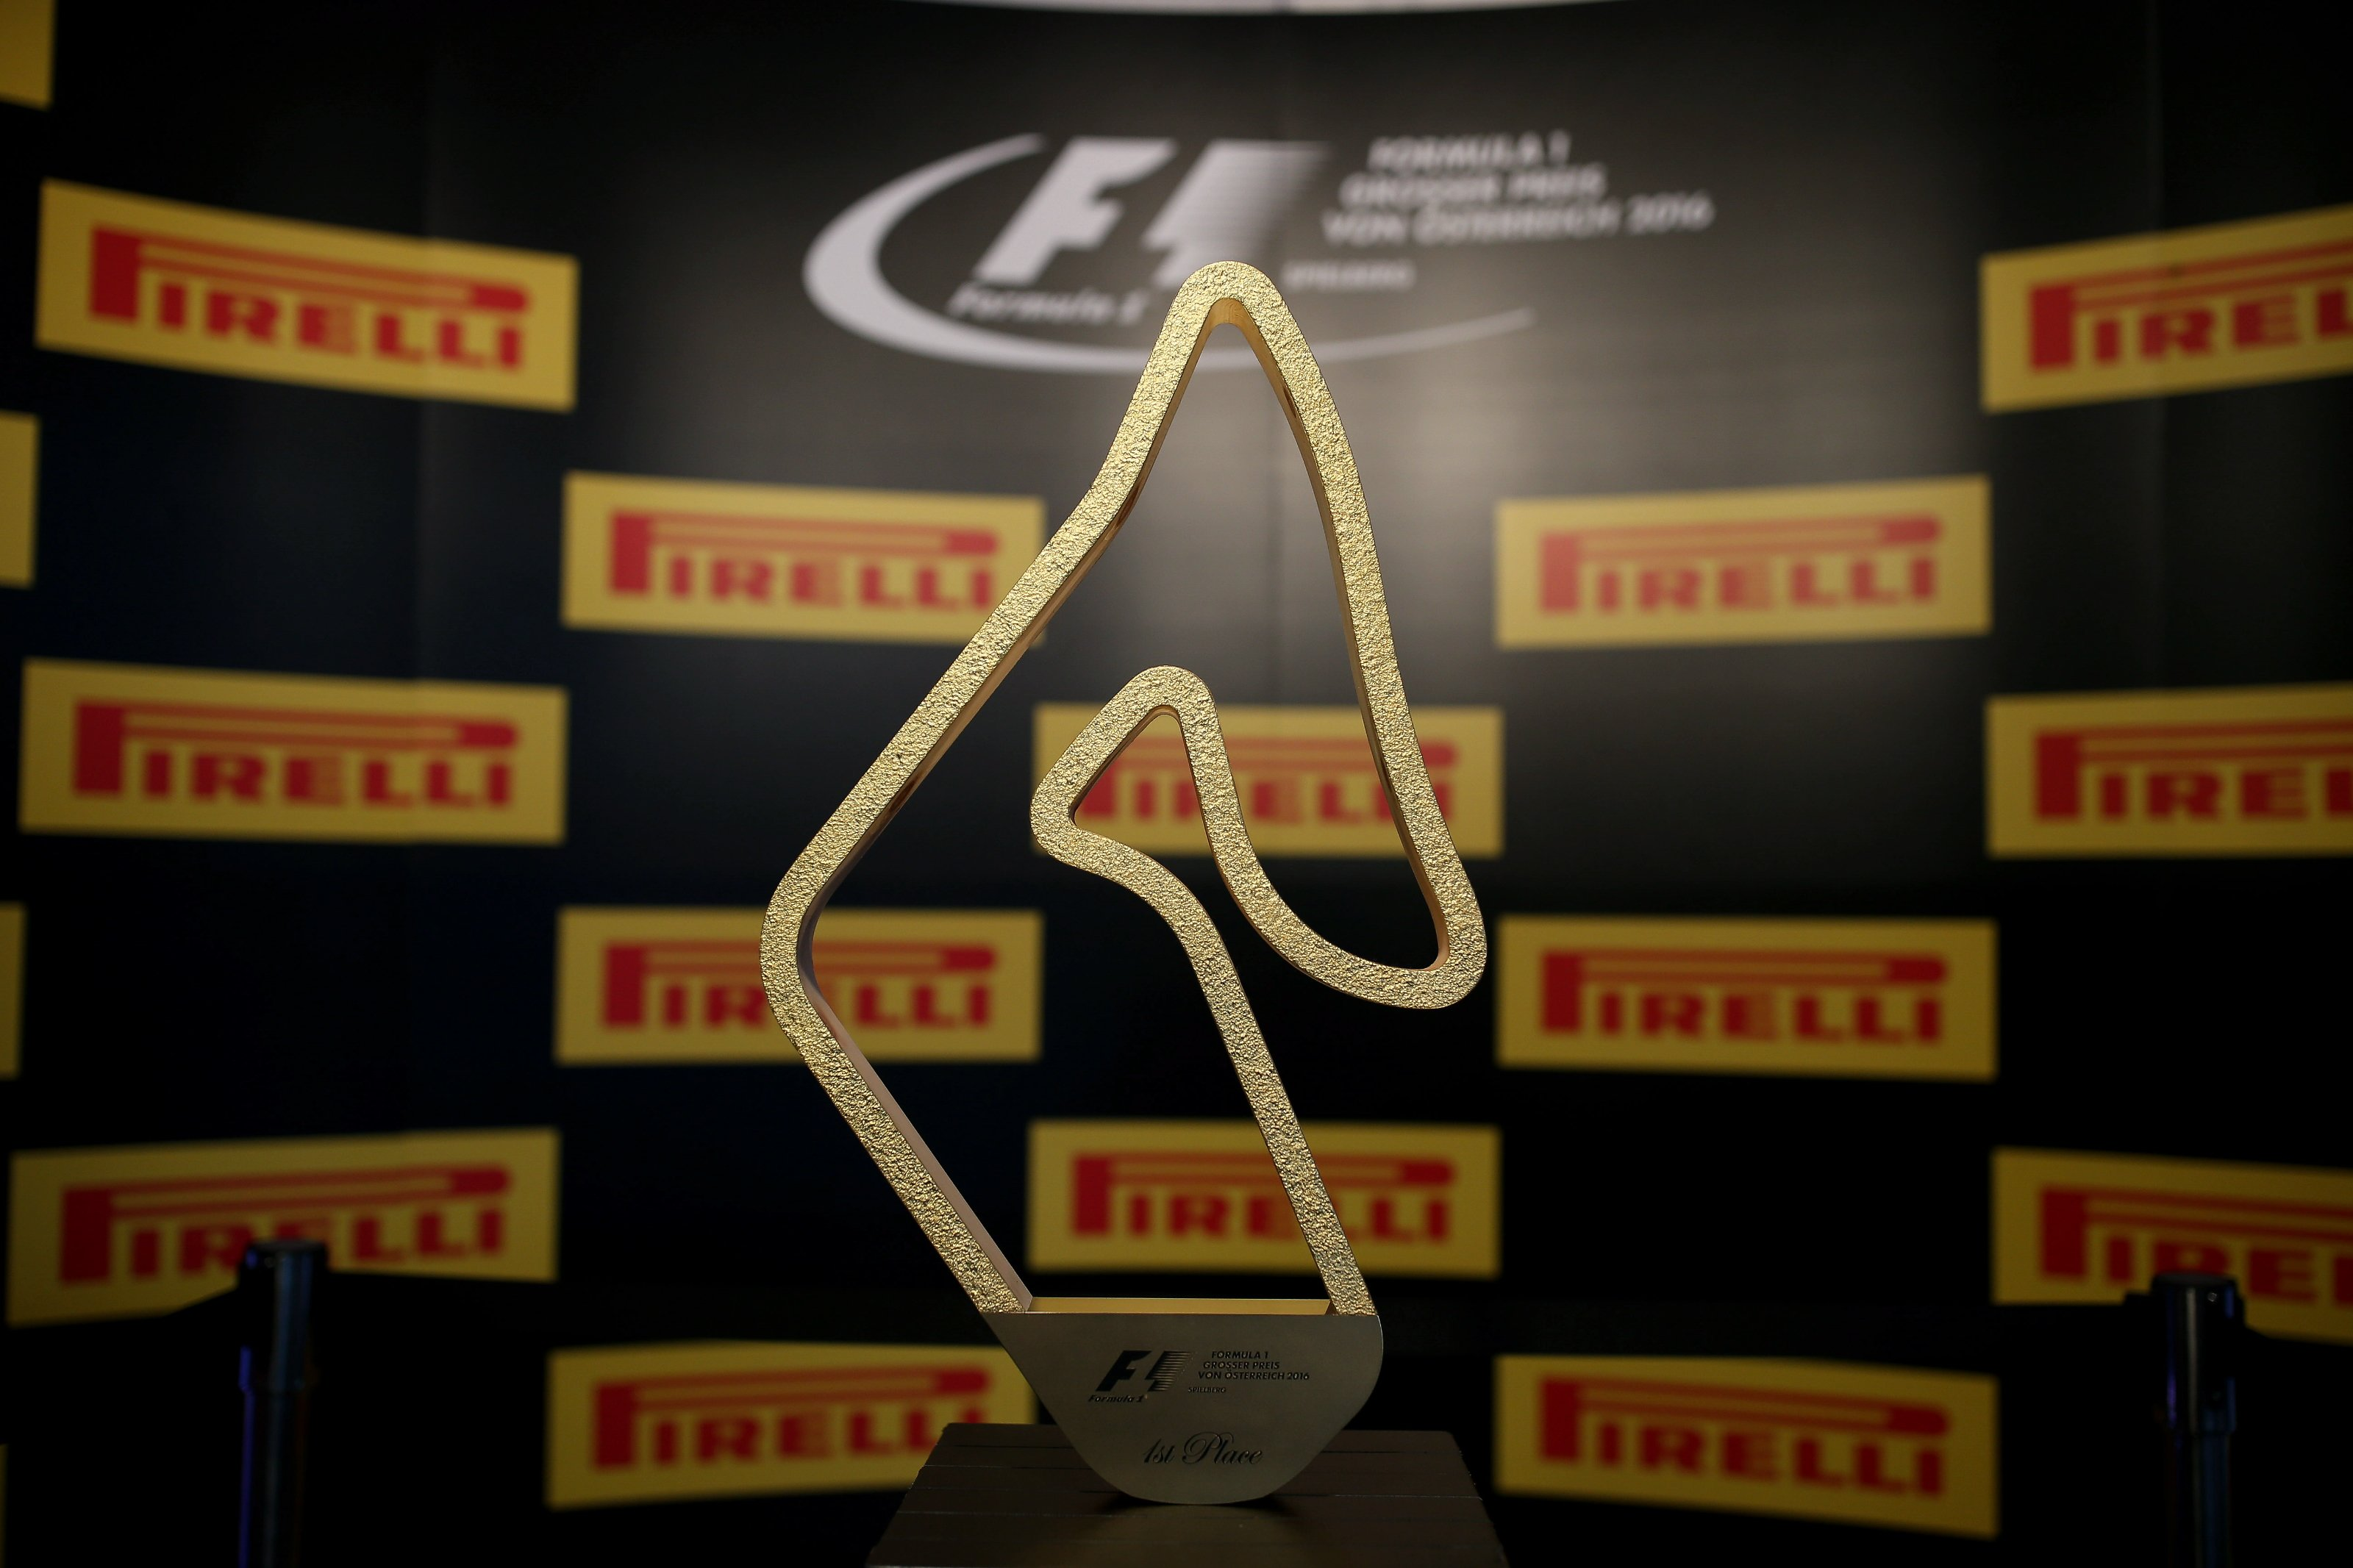 The 2016 Austrian Grand Prix Trophy